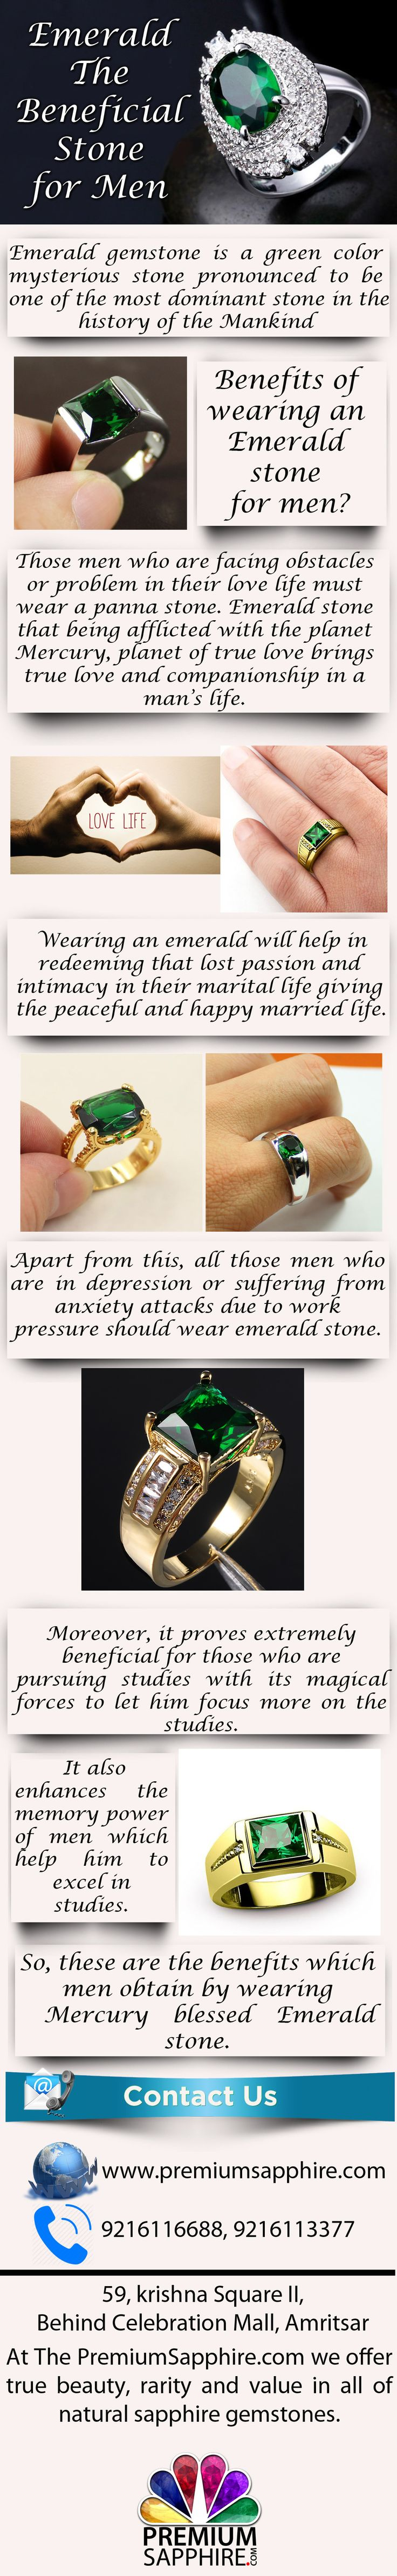 In General emerald stones have been considered the birthstone for the month of May. Emerald also known as Panna having a great value acts a very beneficial stone for men. Have a look at this Infographic presenting the benefits of wearing emerald stone for Men.